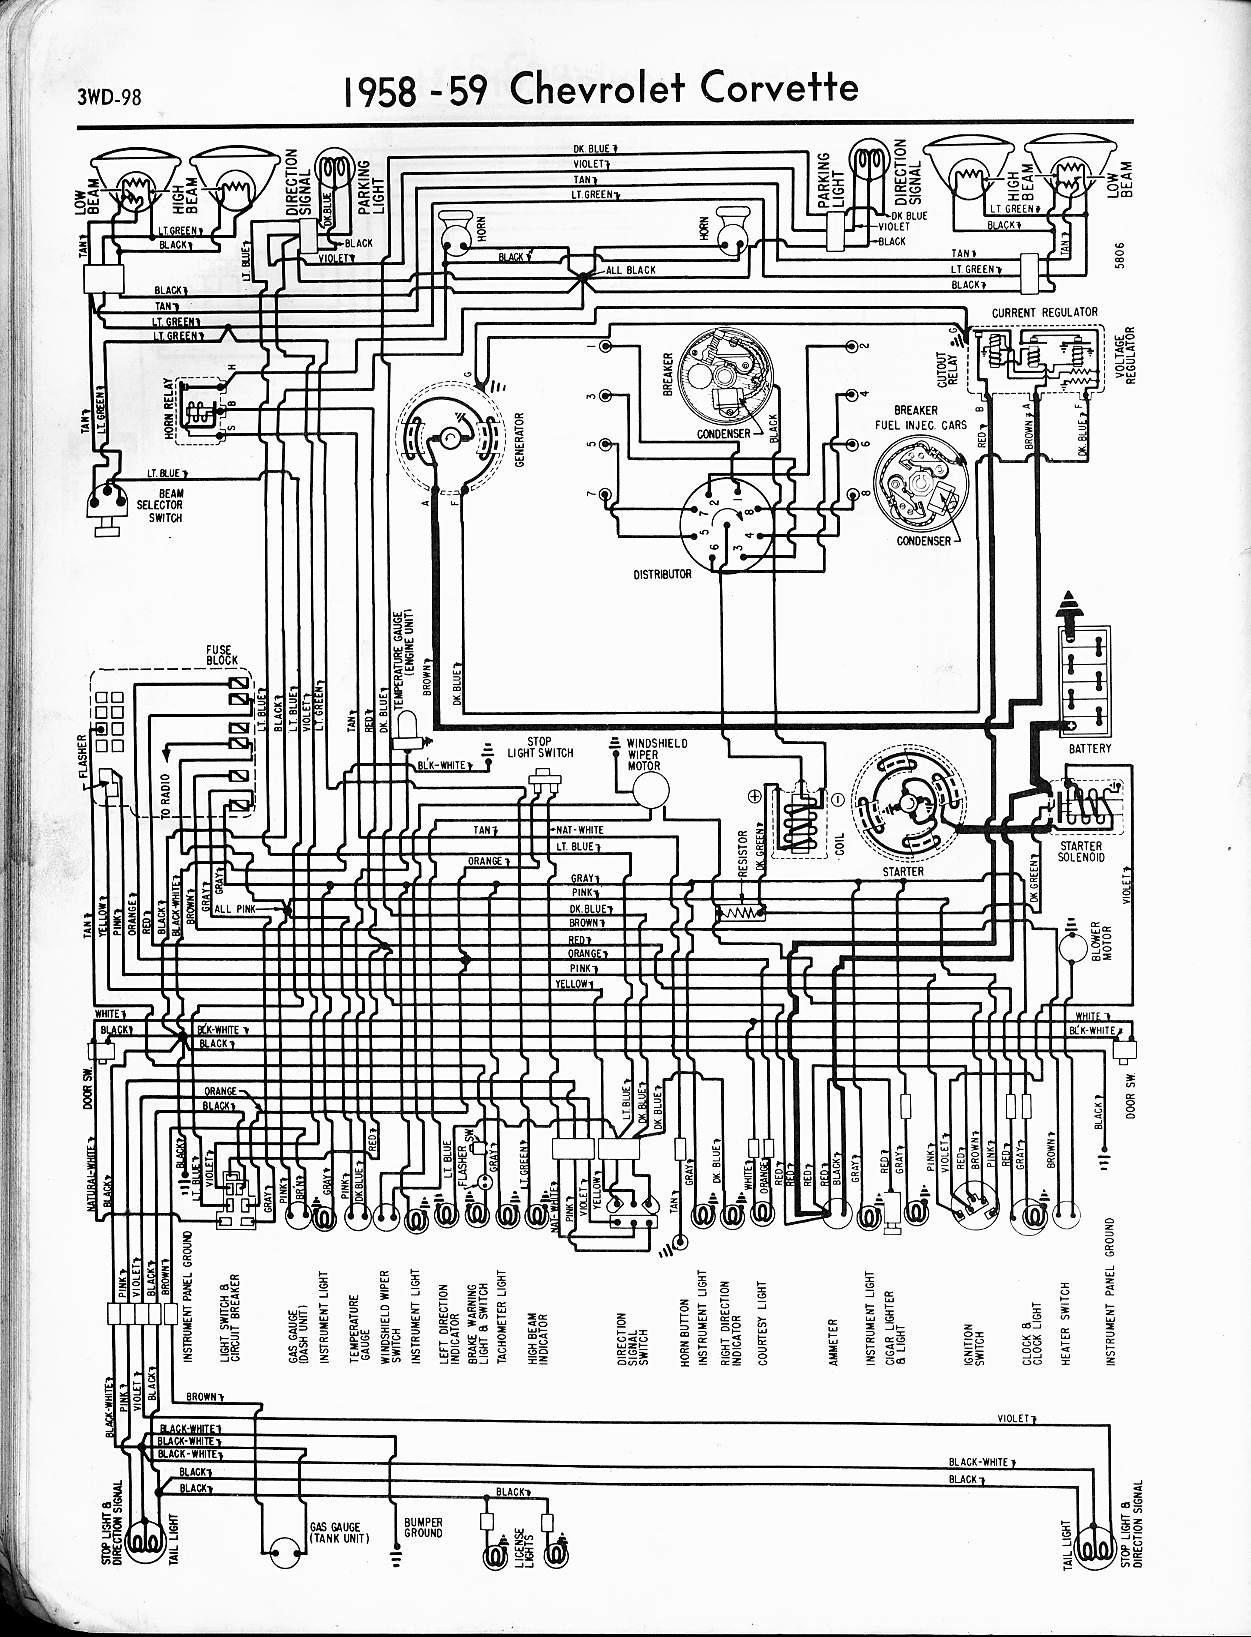 2000 chevy impala engine diagram 57 65 chevy wiring diagrams my